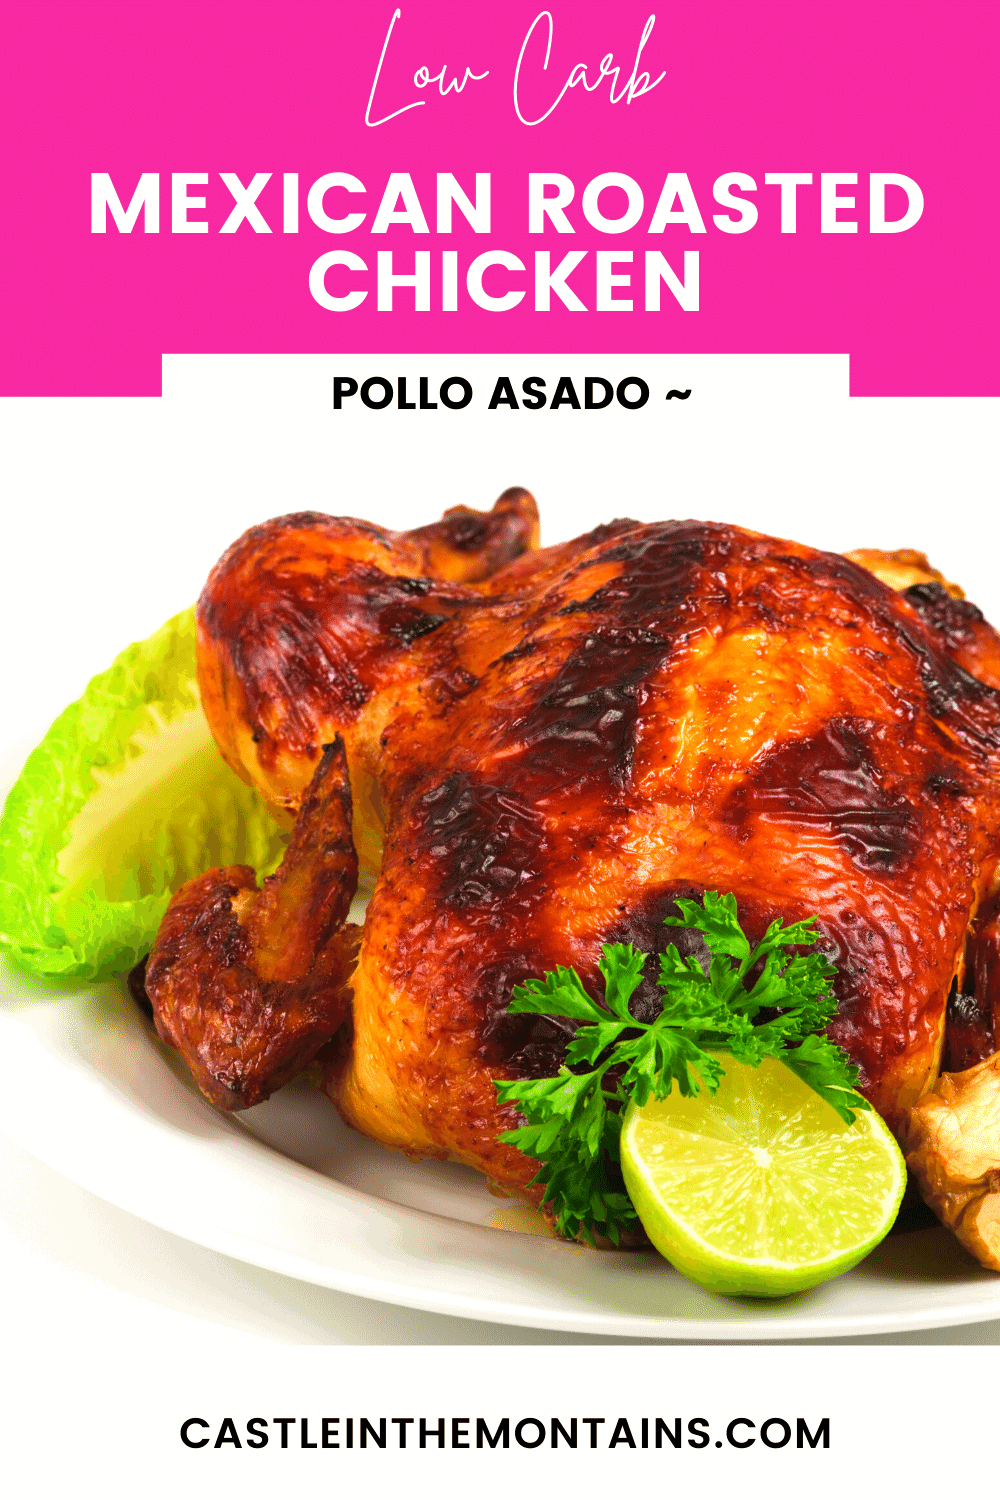 Mexican Roasted Chicken - How to make this easy meal sing!